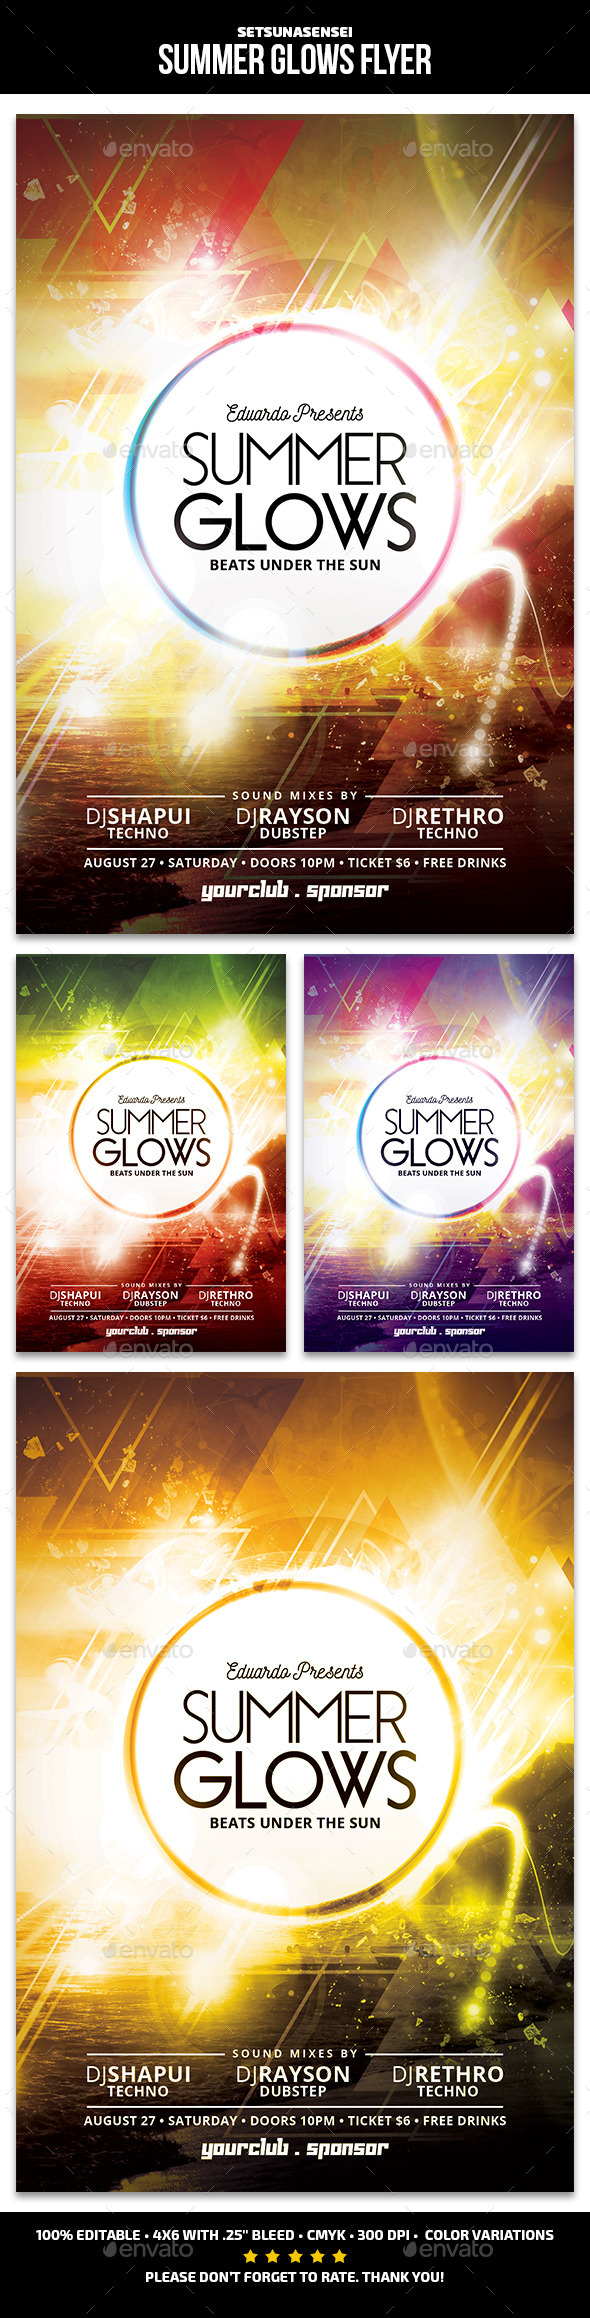 Summer Glows Flyer